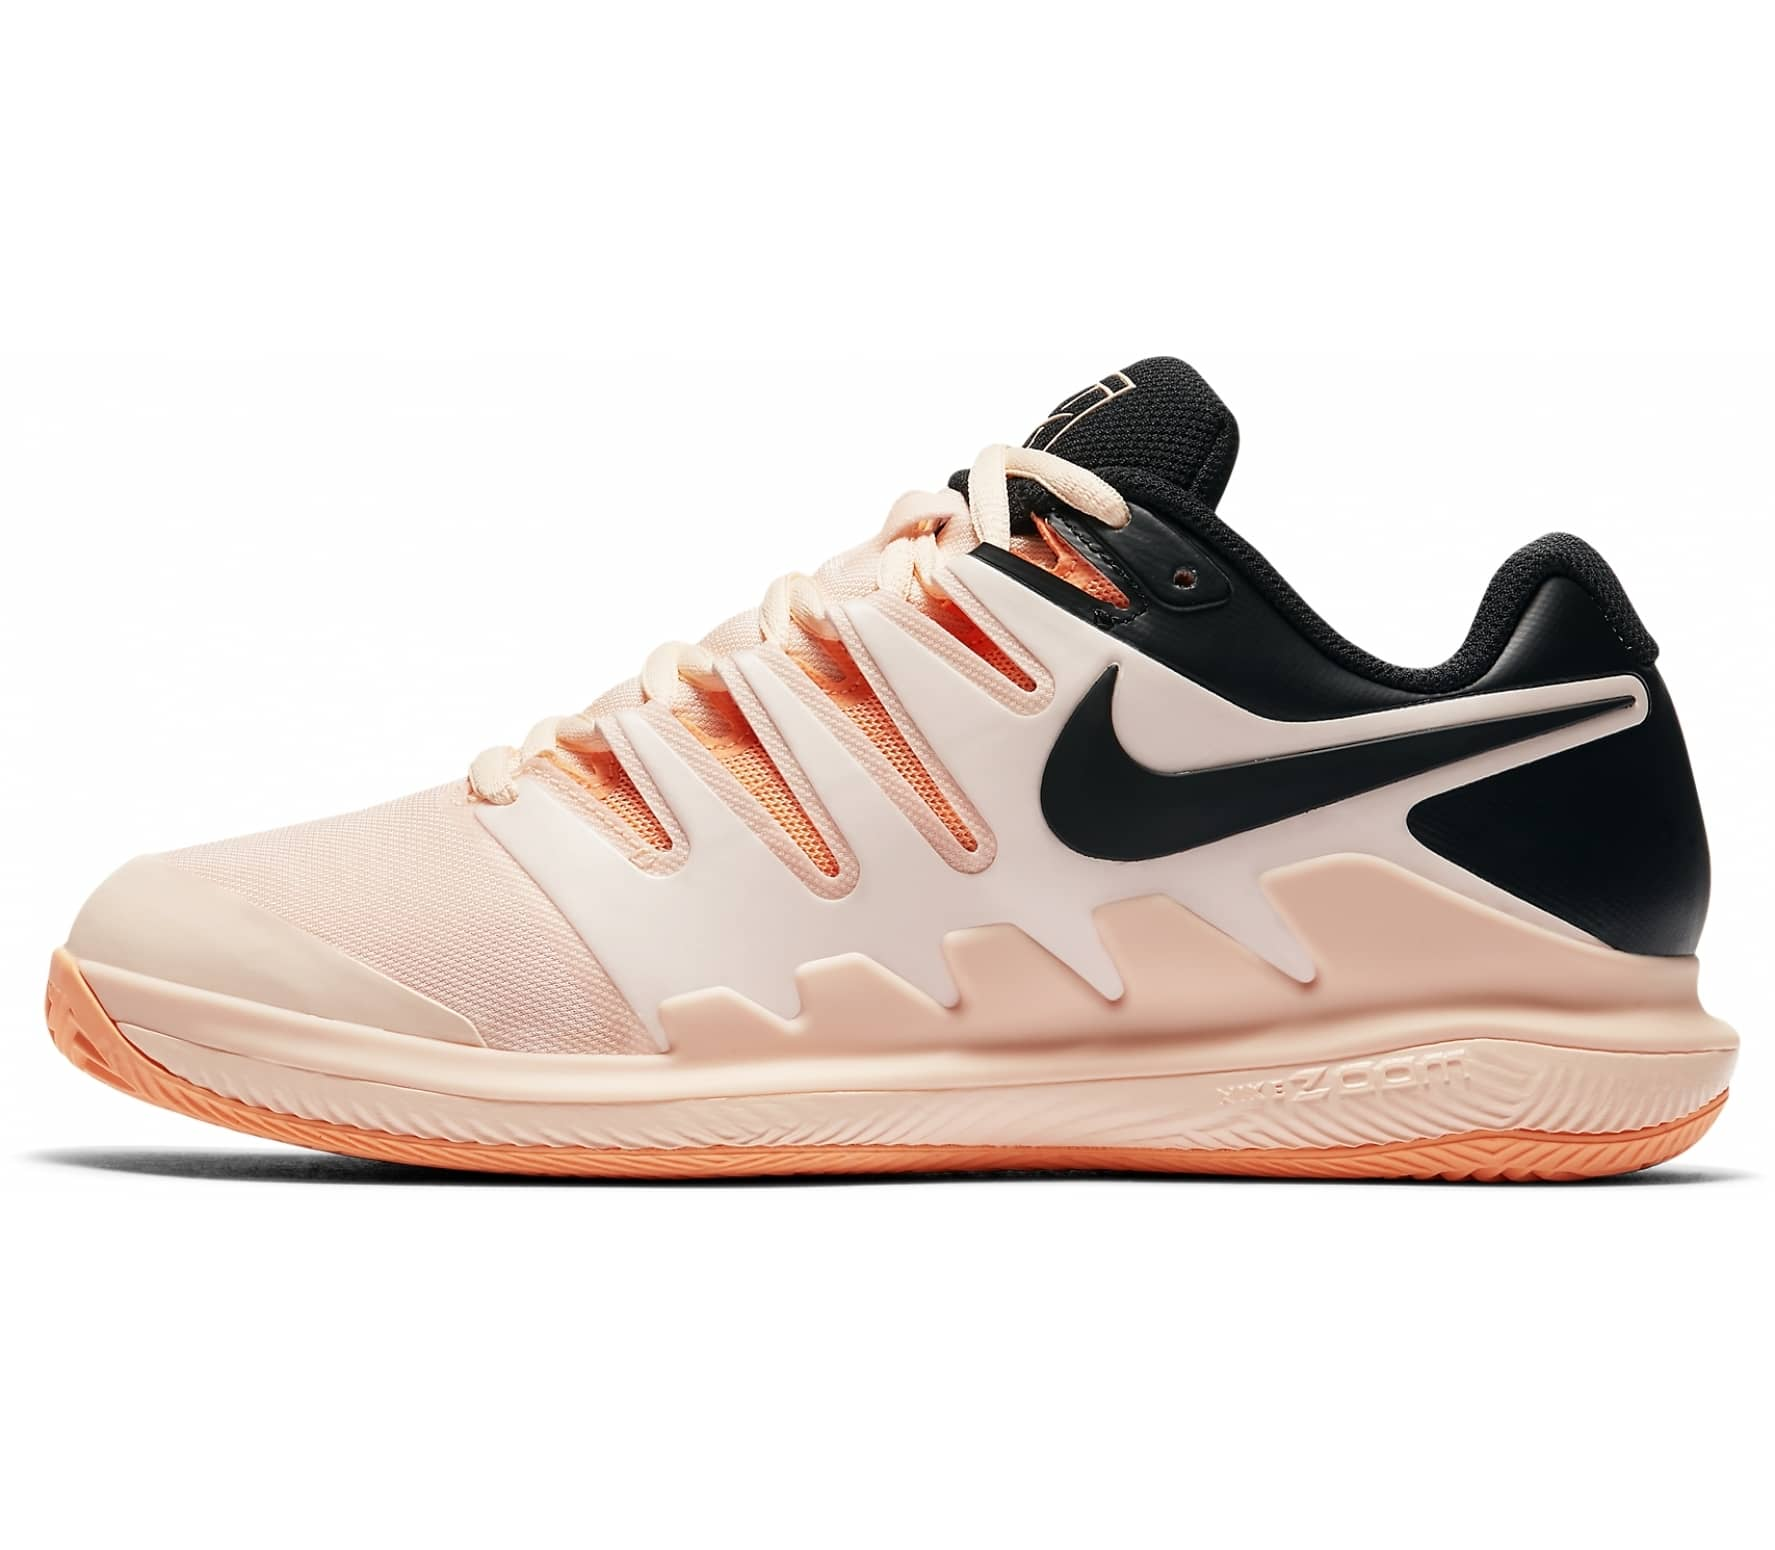 new style 21198 bf5cf Nike - Air Zoom Vapor X Clay womens tennis shoes (hellorangeblack)